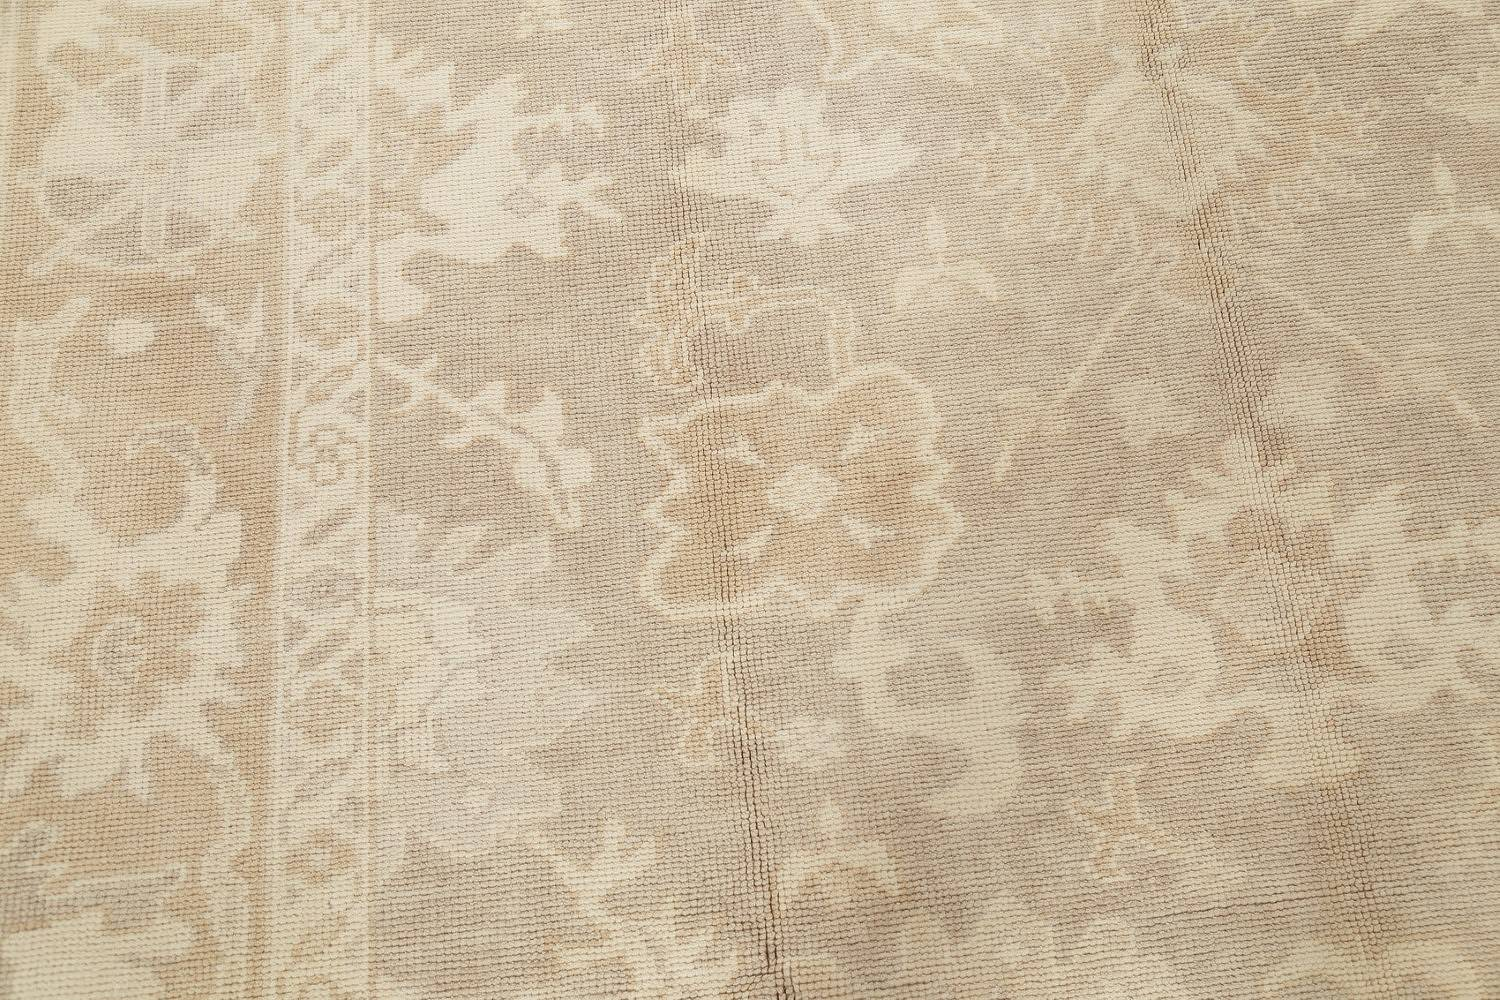 Vegetable Dye Muted Oushak Turkish Hand-Knotted Area Rug 8x16 image 10